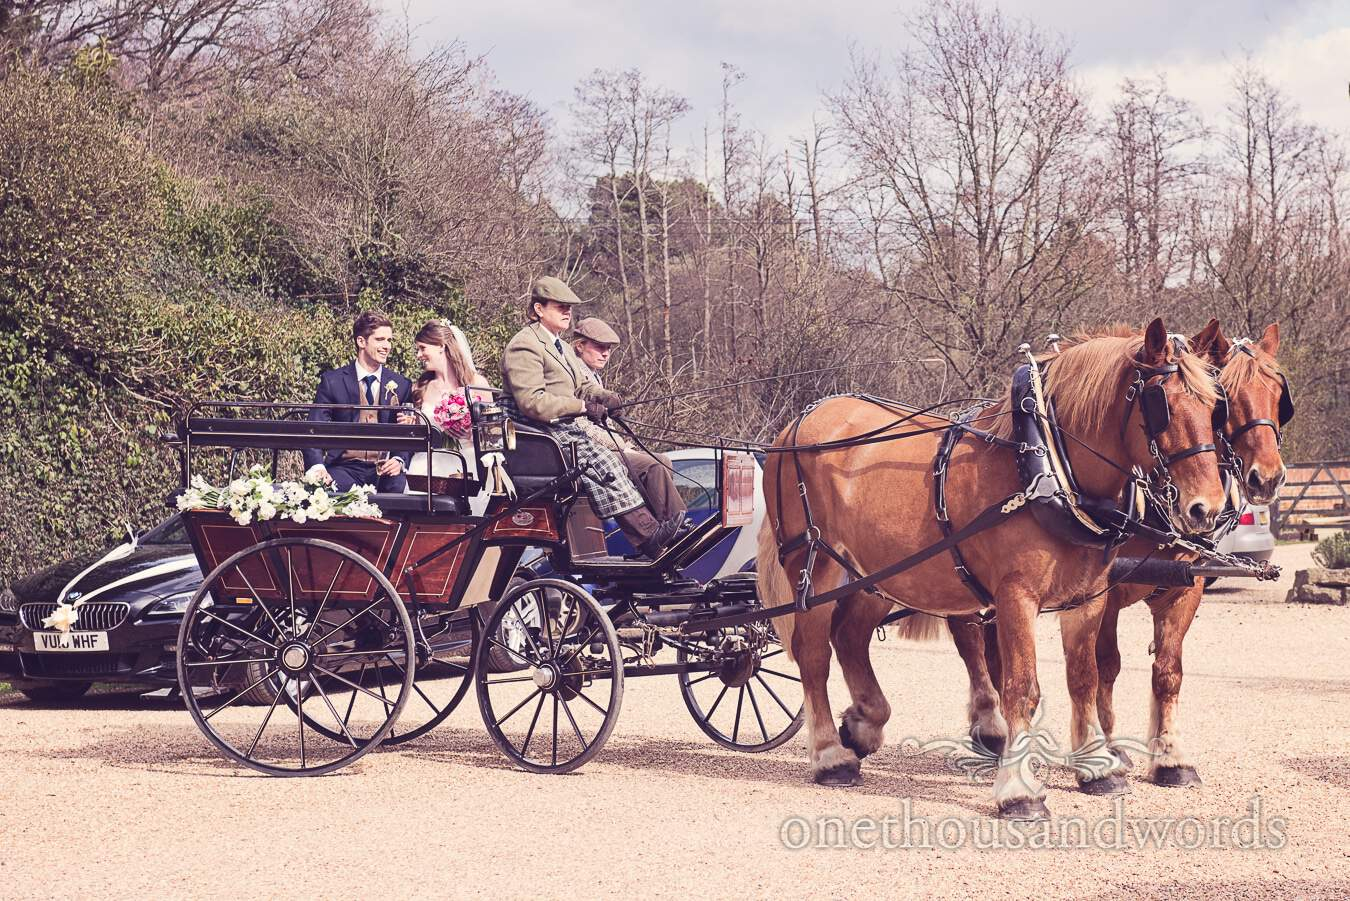 Newlyweds arrive in carriage from wedding at Sopley Mill